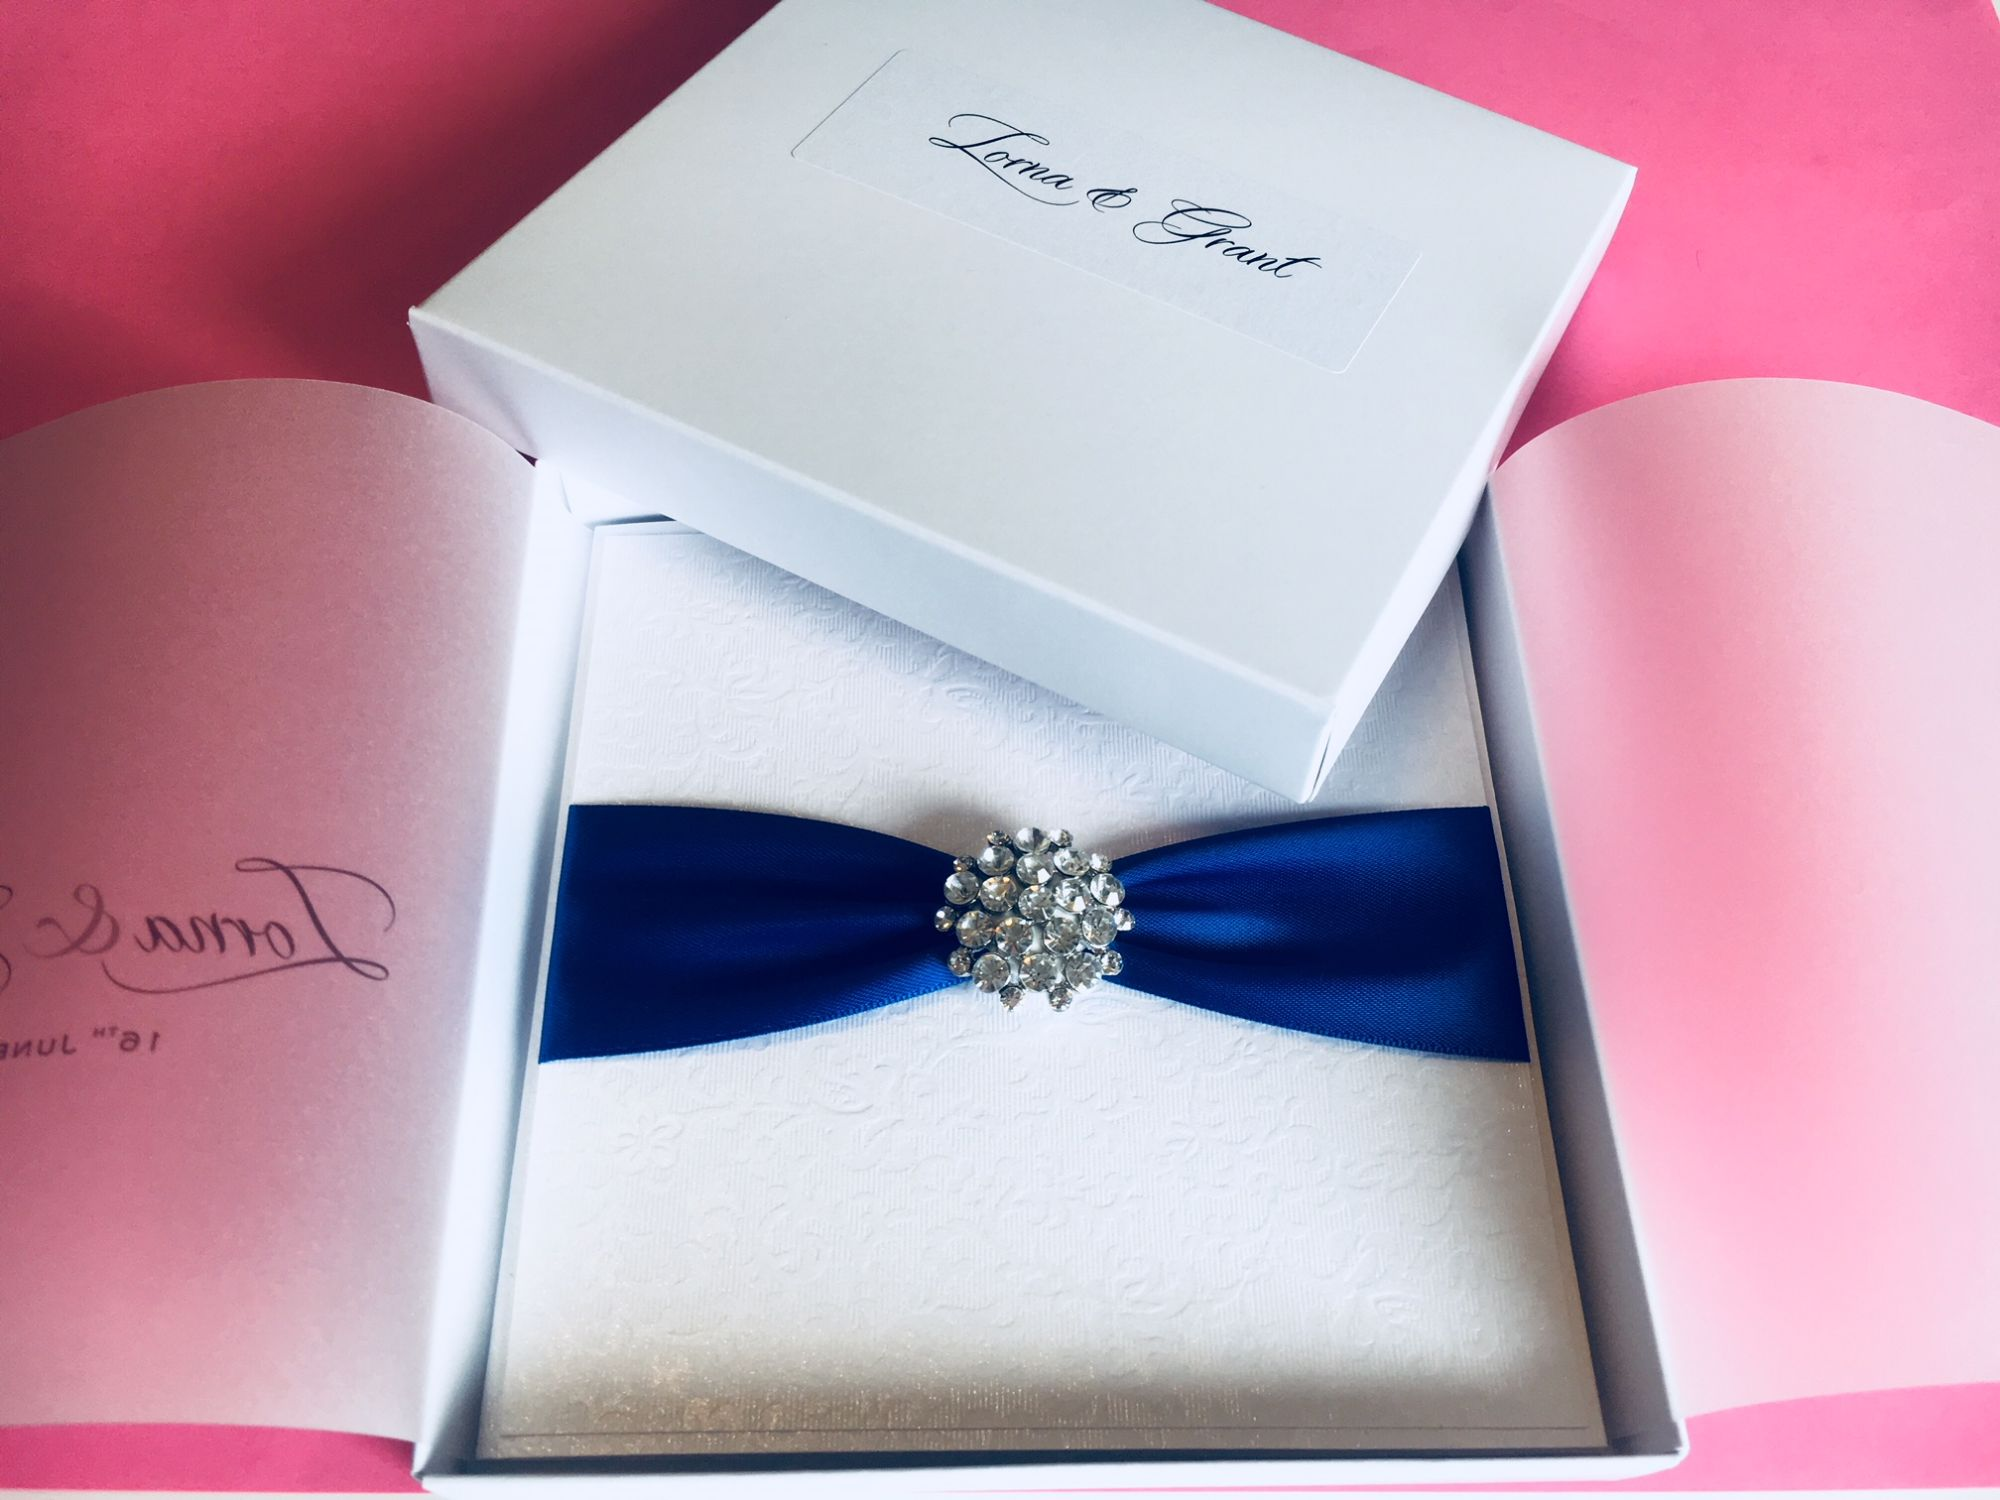 Boxed wedding invitation with royal blue ribbon and crystal brooch